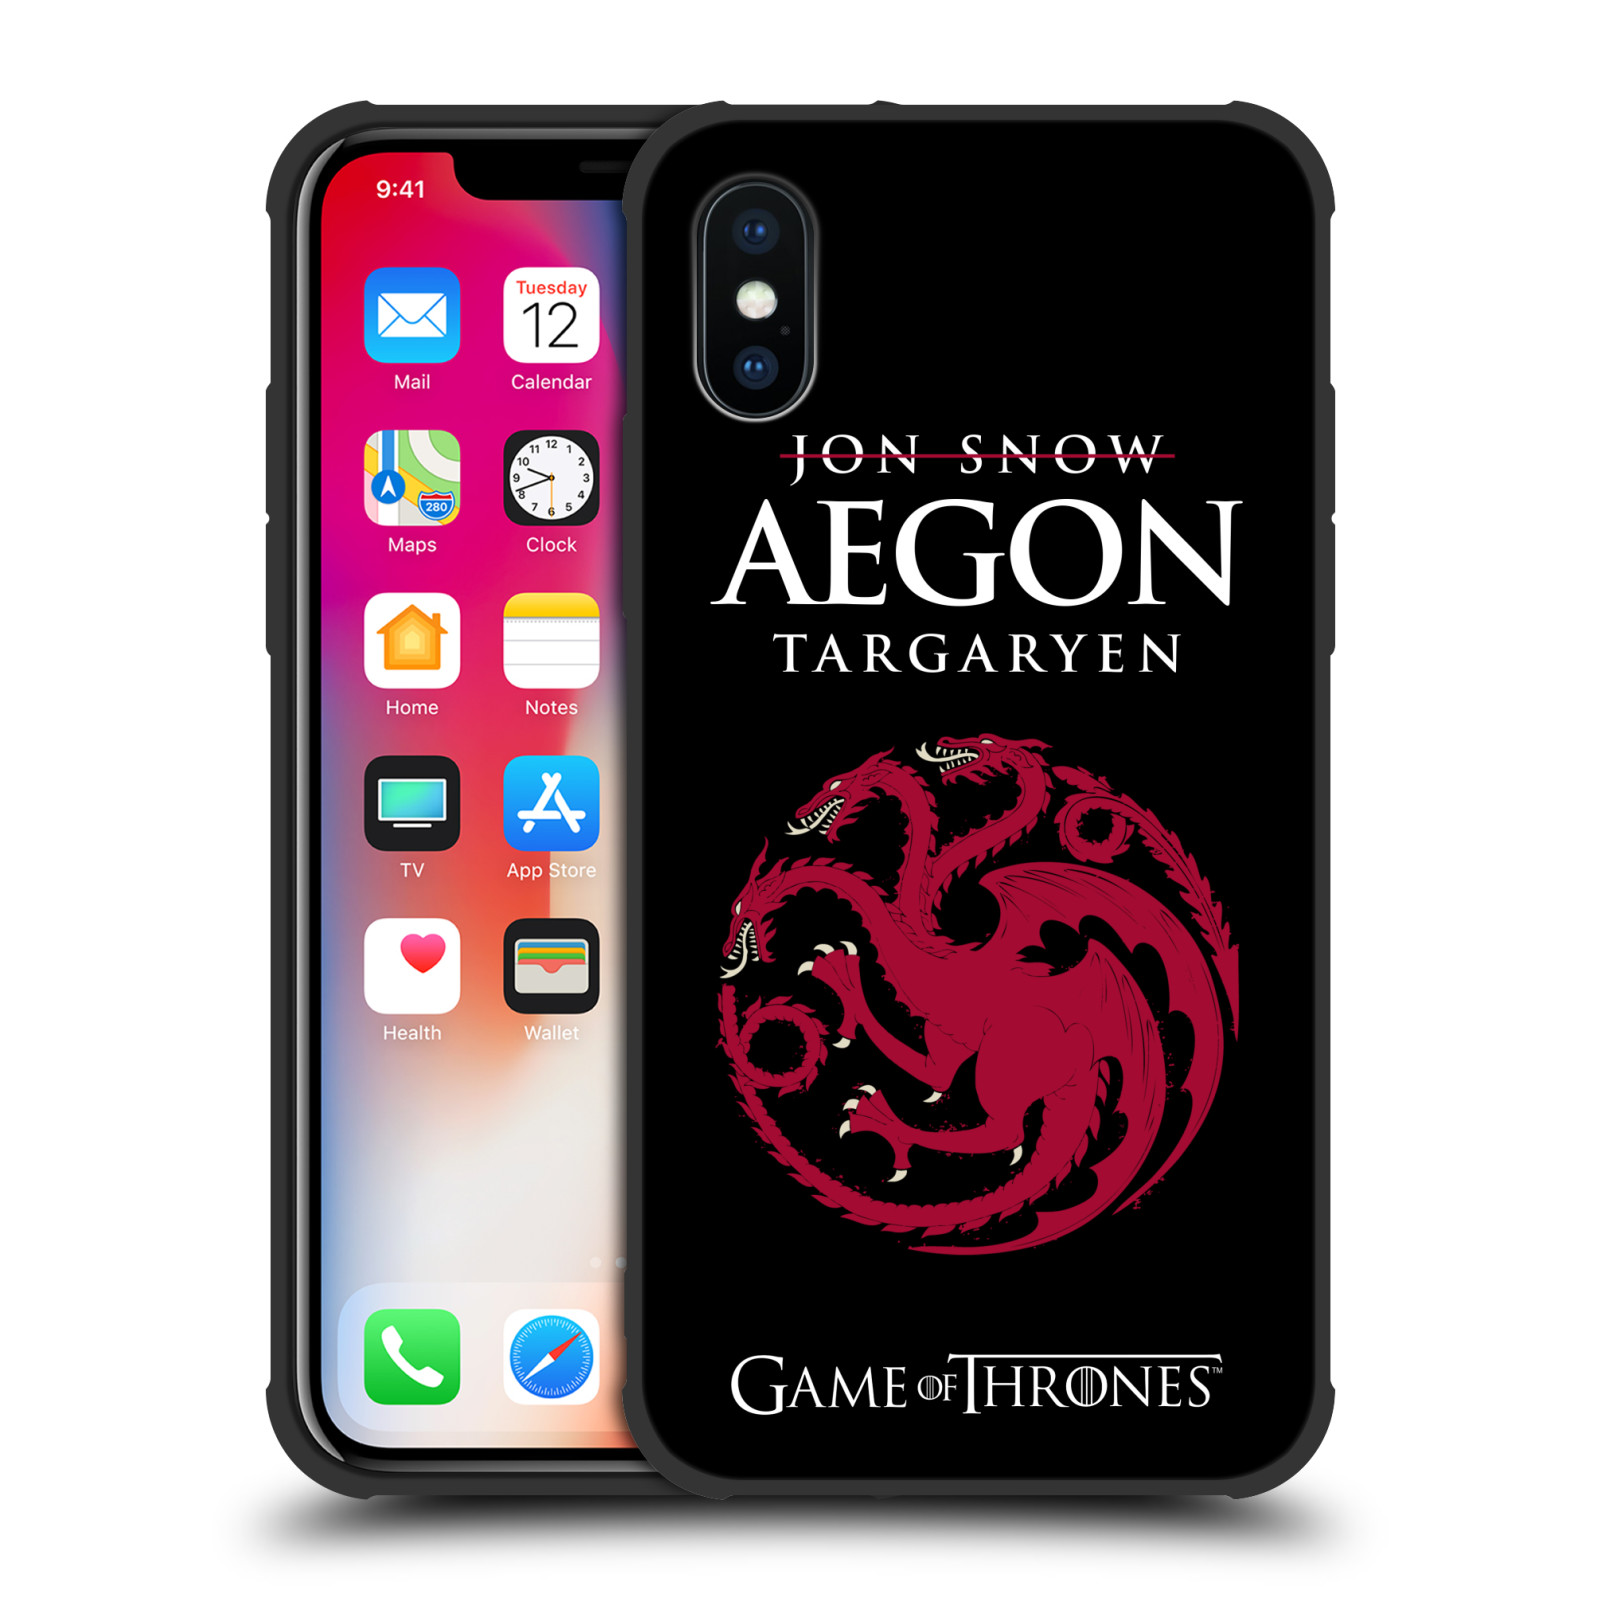 OFFICIAL-HBO-GAME-OF-THRONES-GRAPHICS-MATTE-BLACK-CASE-FOR-APPLE-iPHONE-PHONES